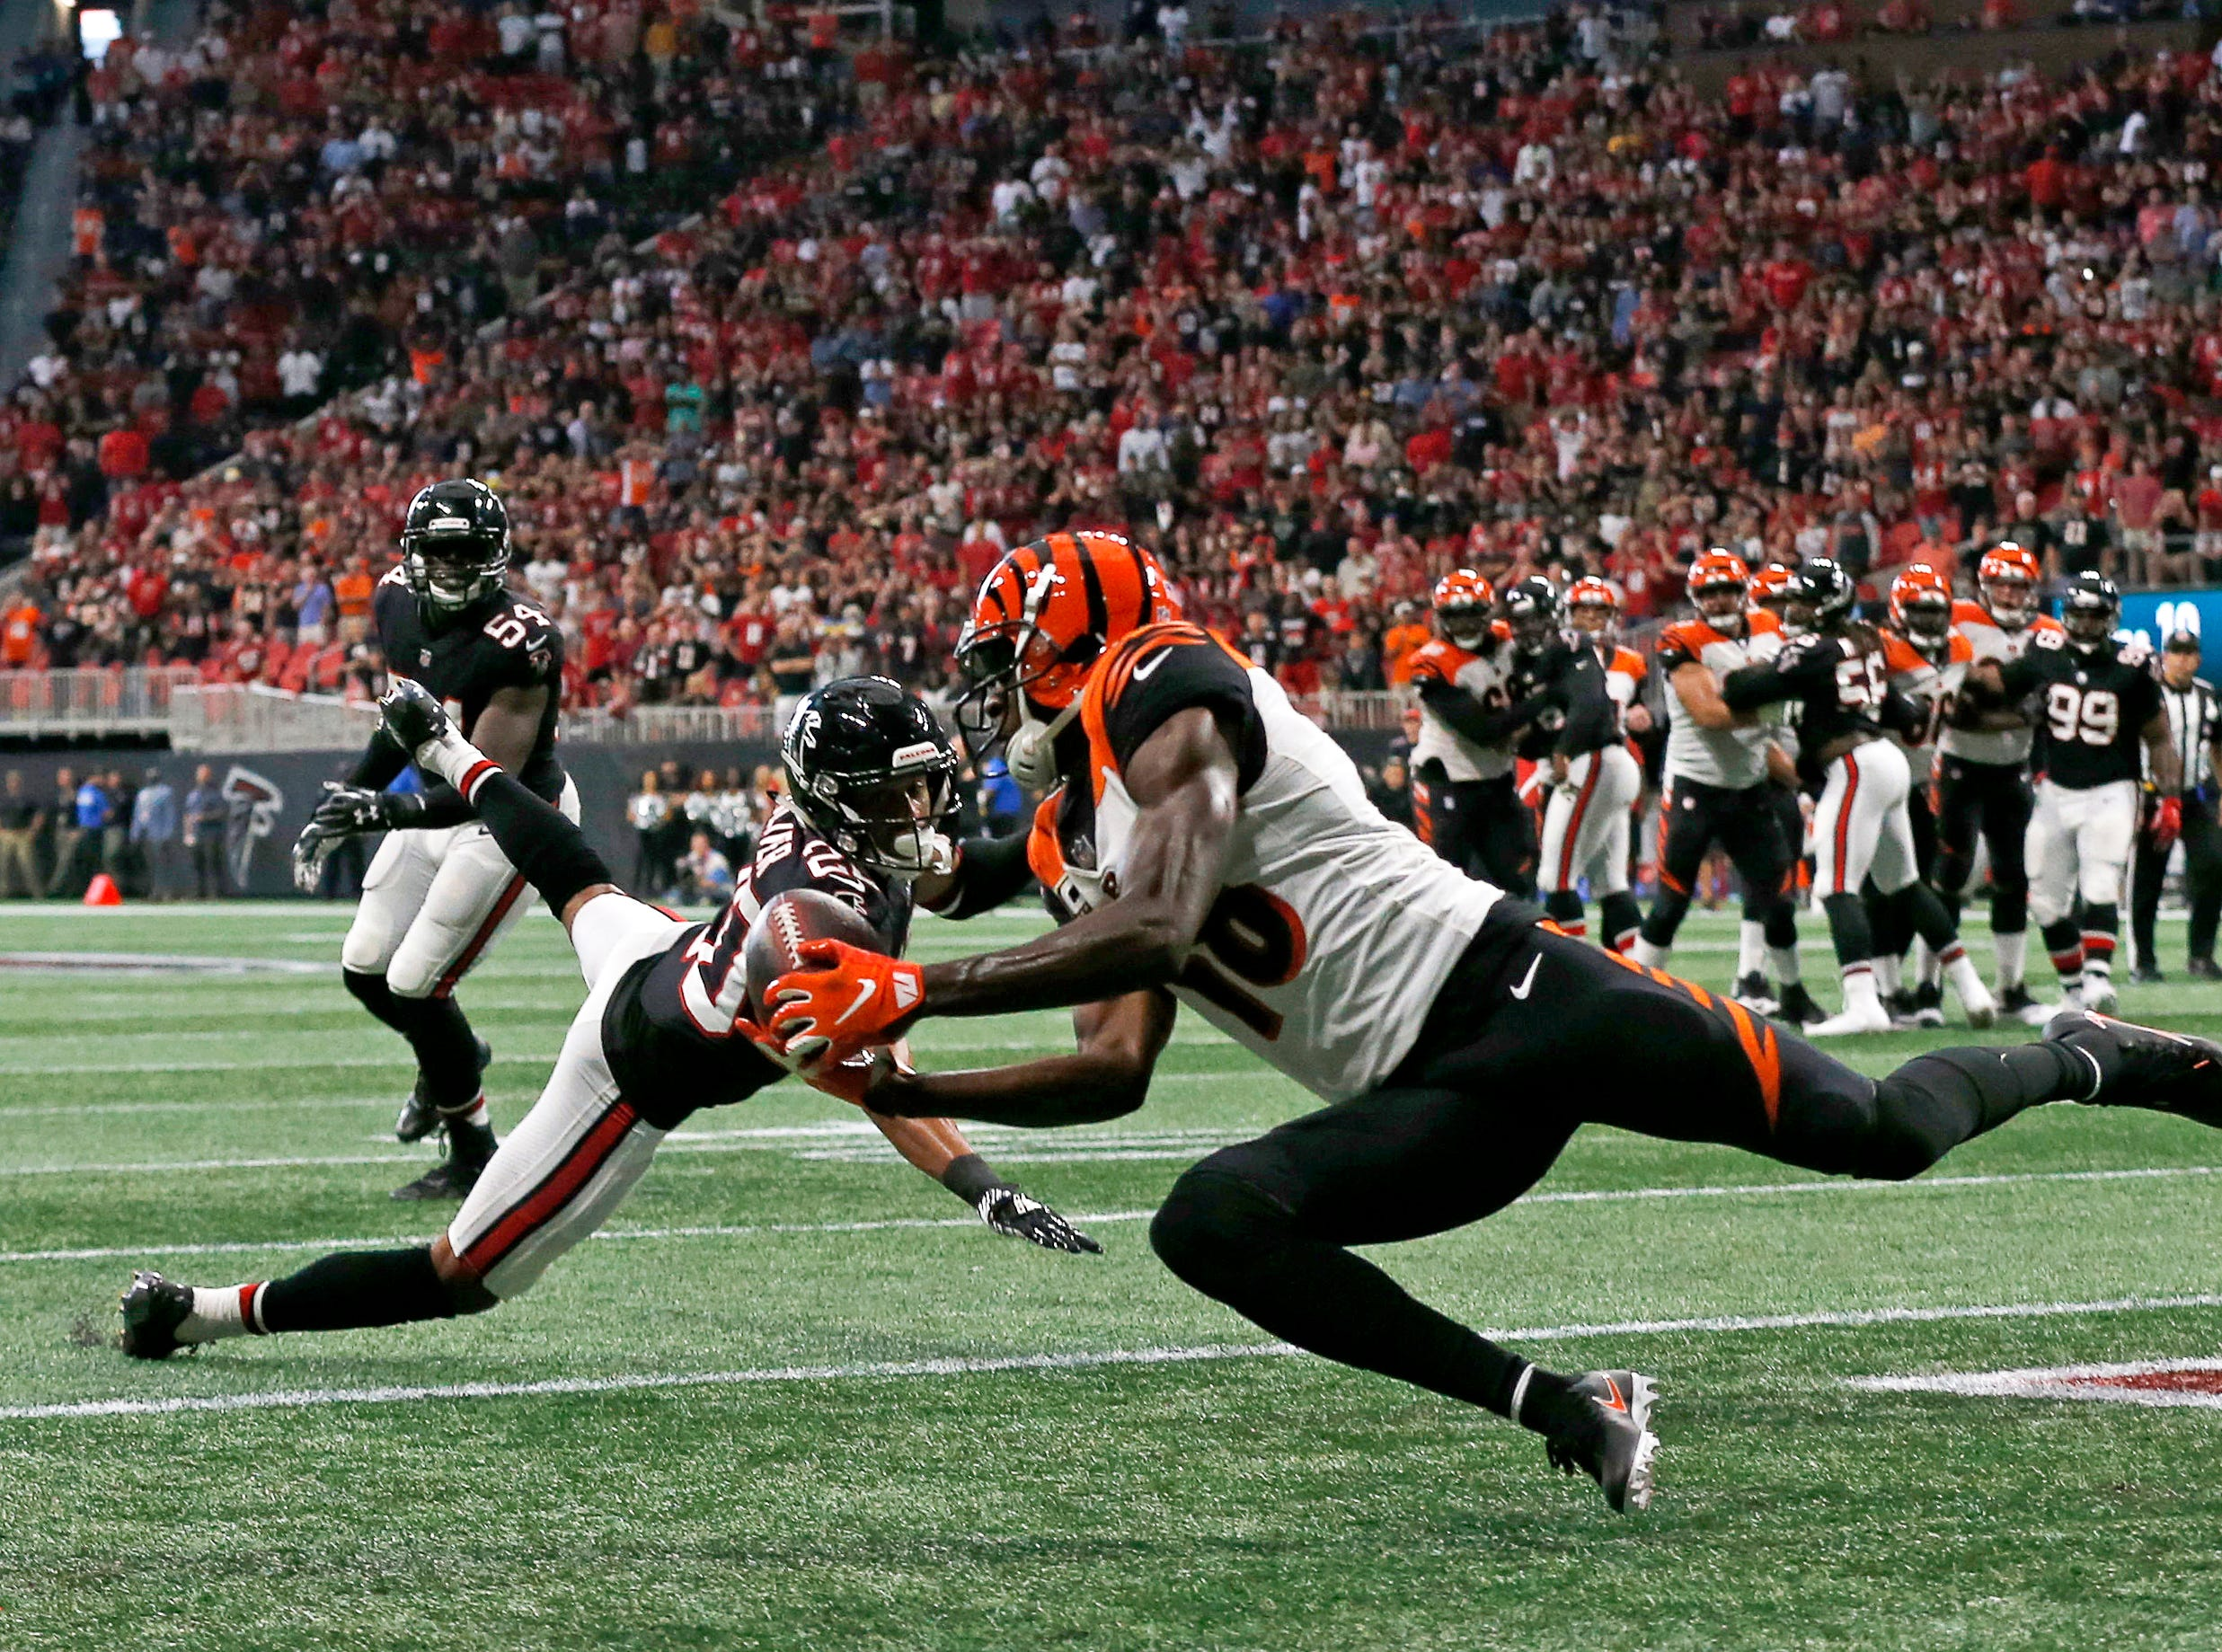 "Maybe the peak moment of this miserable Bengals season (for the team and for me as a photographer) was A.J. Green's game-winning catch at the end of the game in Atlanta. With the game on the line, I knew as well as the team did that the entire day was possibly going to be summed up in one moment. With the pressure on, Andy Dalton and Green managed to pull off a stunning pass, and I was thankfully right where I needed to be to capture it. They say ""luck is where opportunity meets preparation"" and this was one of those instances. It seems that whether you're a quarterback or a photographer, you can always count on Green.  Cincinnati Bengals wide receiver A.J. Green (18) catches the game-winning touchdown pass with seven seconds remaining in the fourth quarter of the NFL Week 4 game between the Atlanta Falcons and the Cincinnati Bengals at Mercedes-Benz Stadium in Atlanta on Sunday, Sept. 30, 2018. The Bengals scored a touchdown in the final seconds of the fourth quarter to win 37-36."